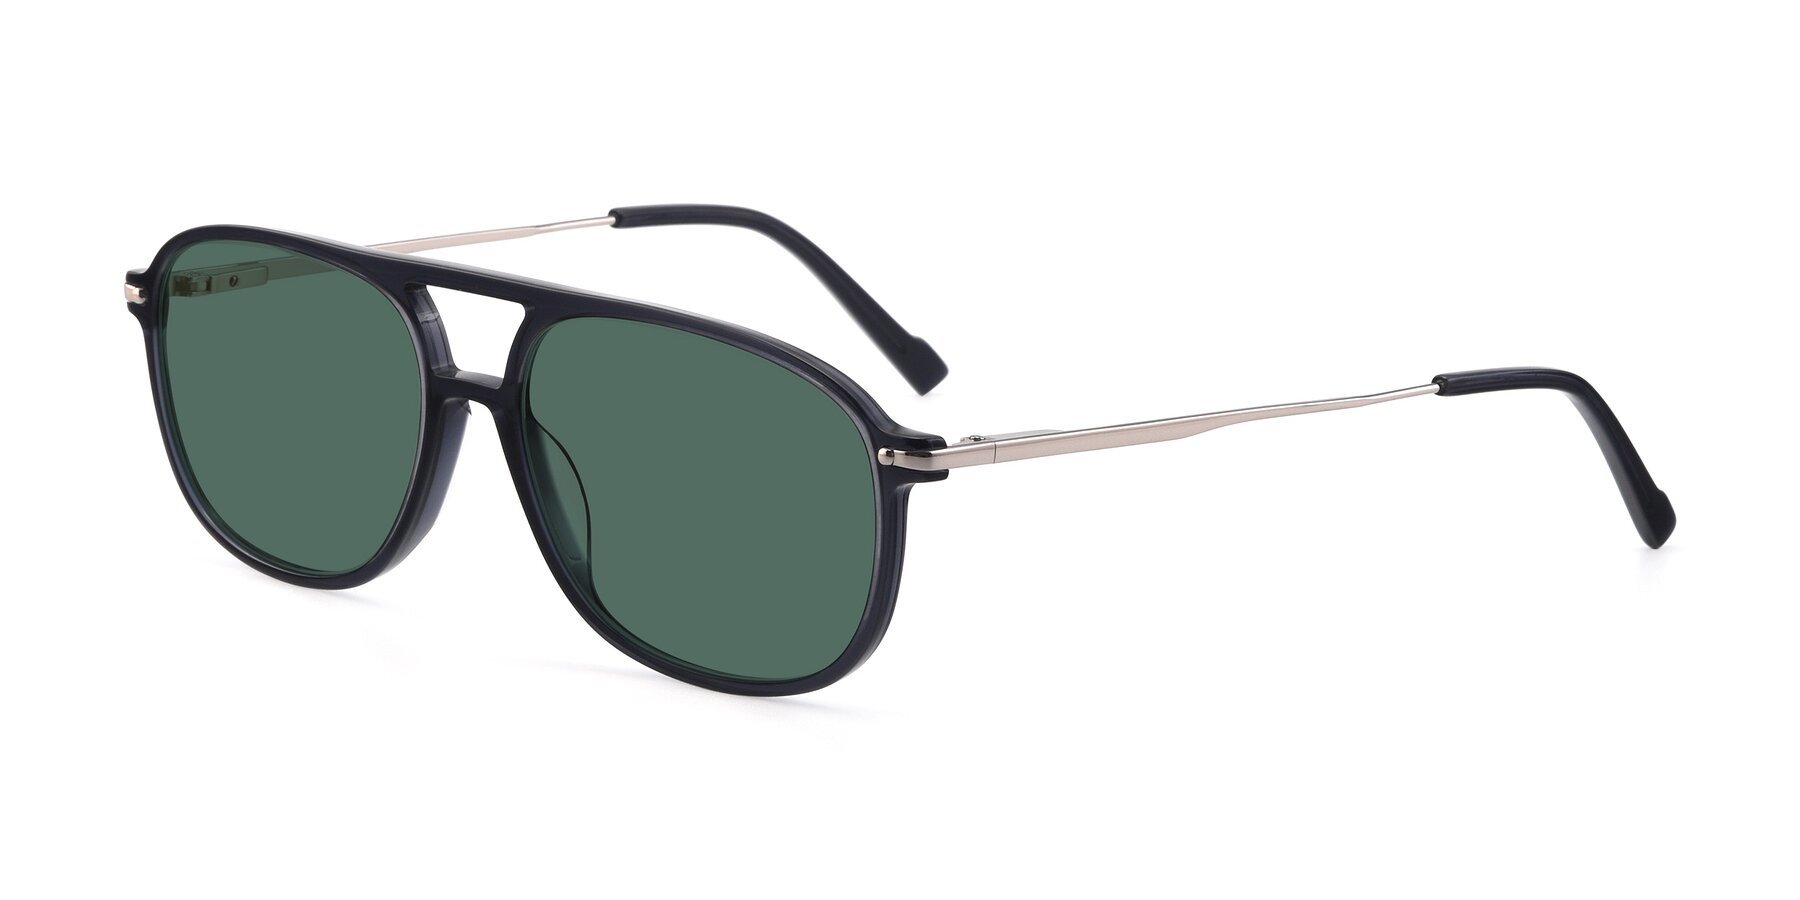 Angle of 17580 in Dark Bluish Gray with Green Polarized Lenses